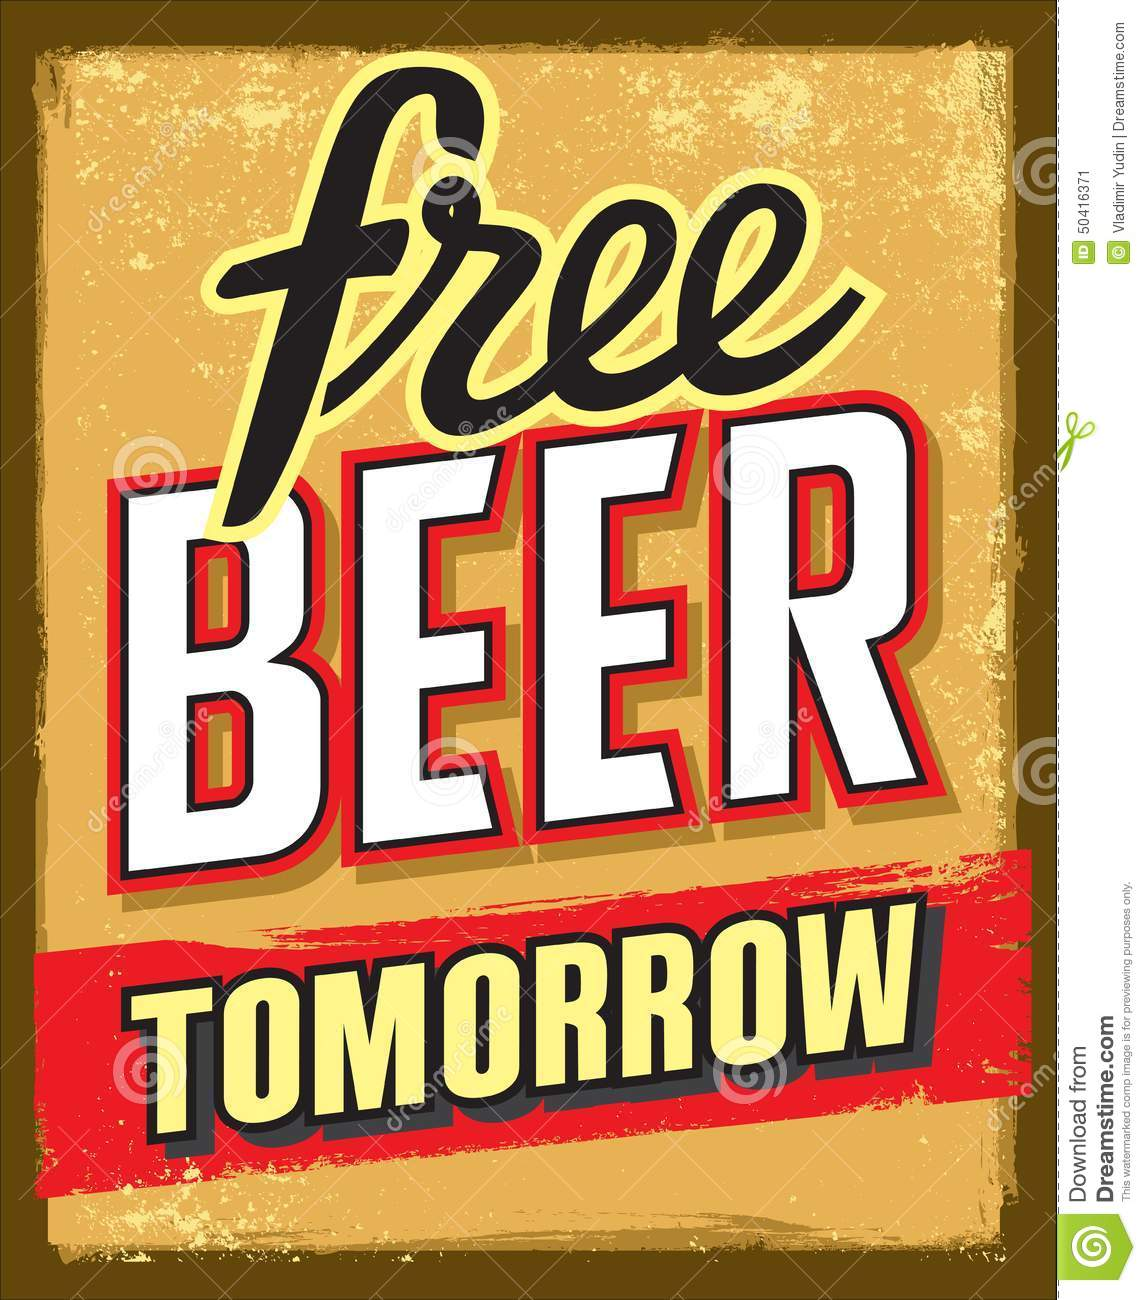 Free beer tomorrow stock vector. Illustration of poster ...